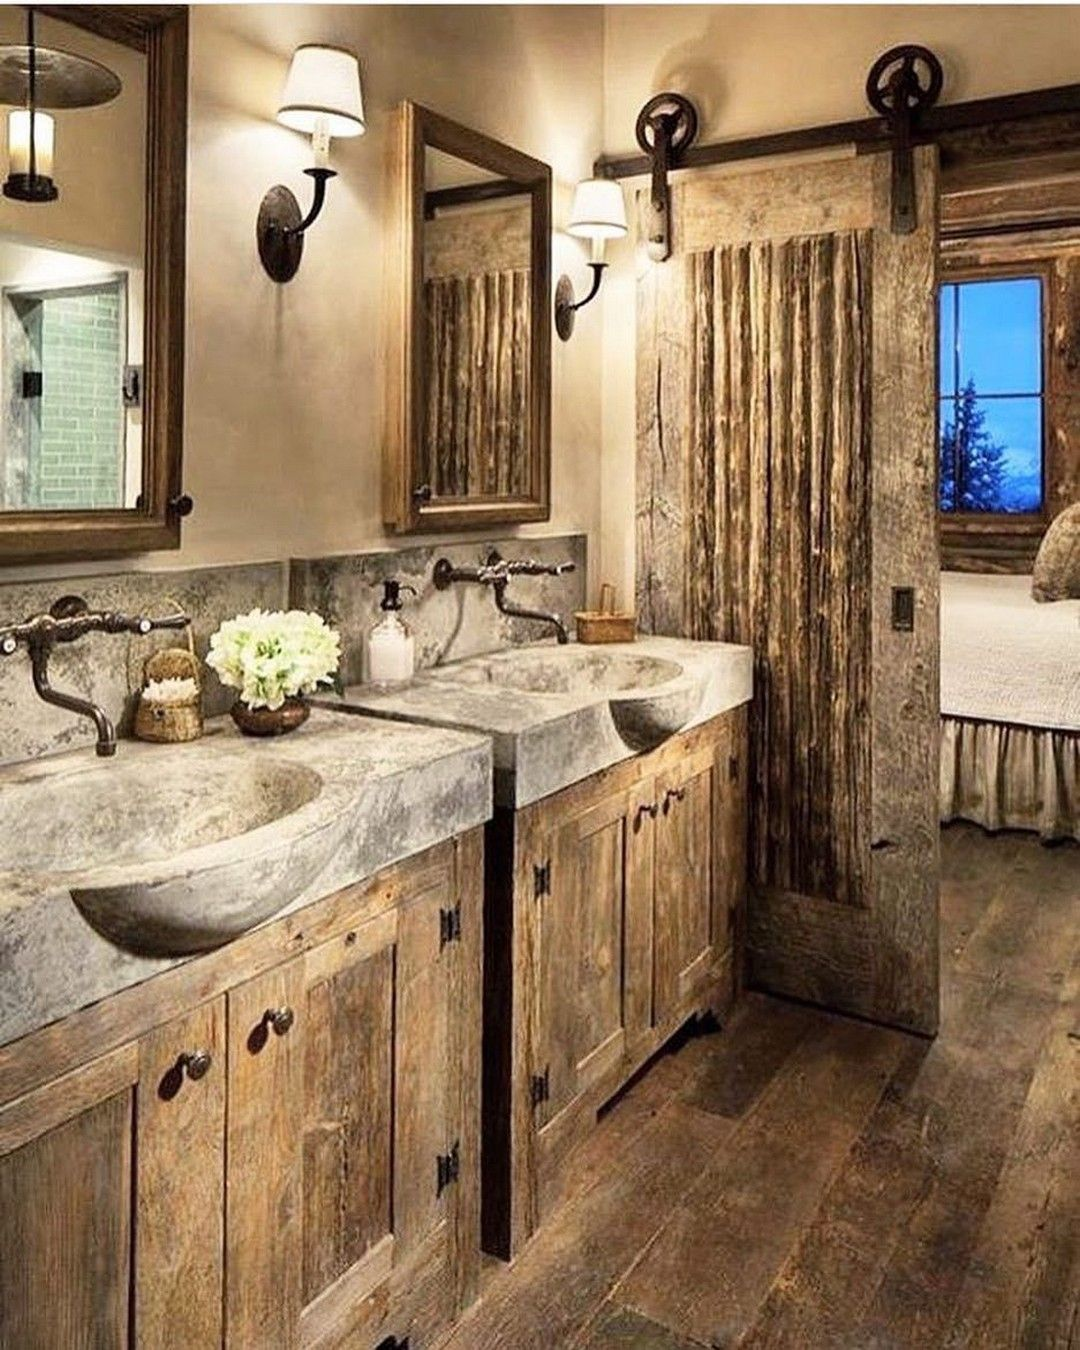 Home Design Ideas Bathroom: 30+ Fantastic Bathroom Countertop Ideas Look Elegant